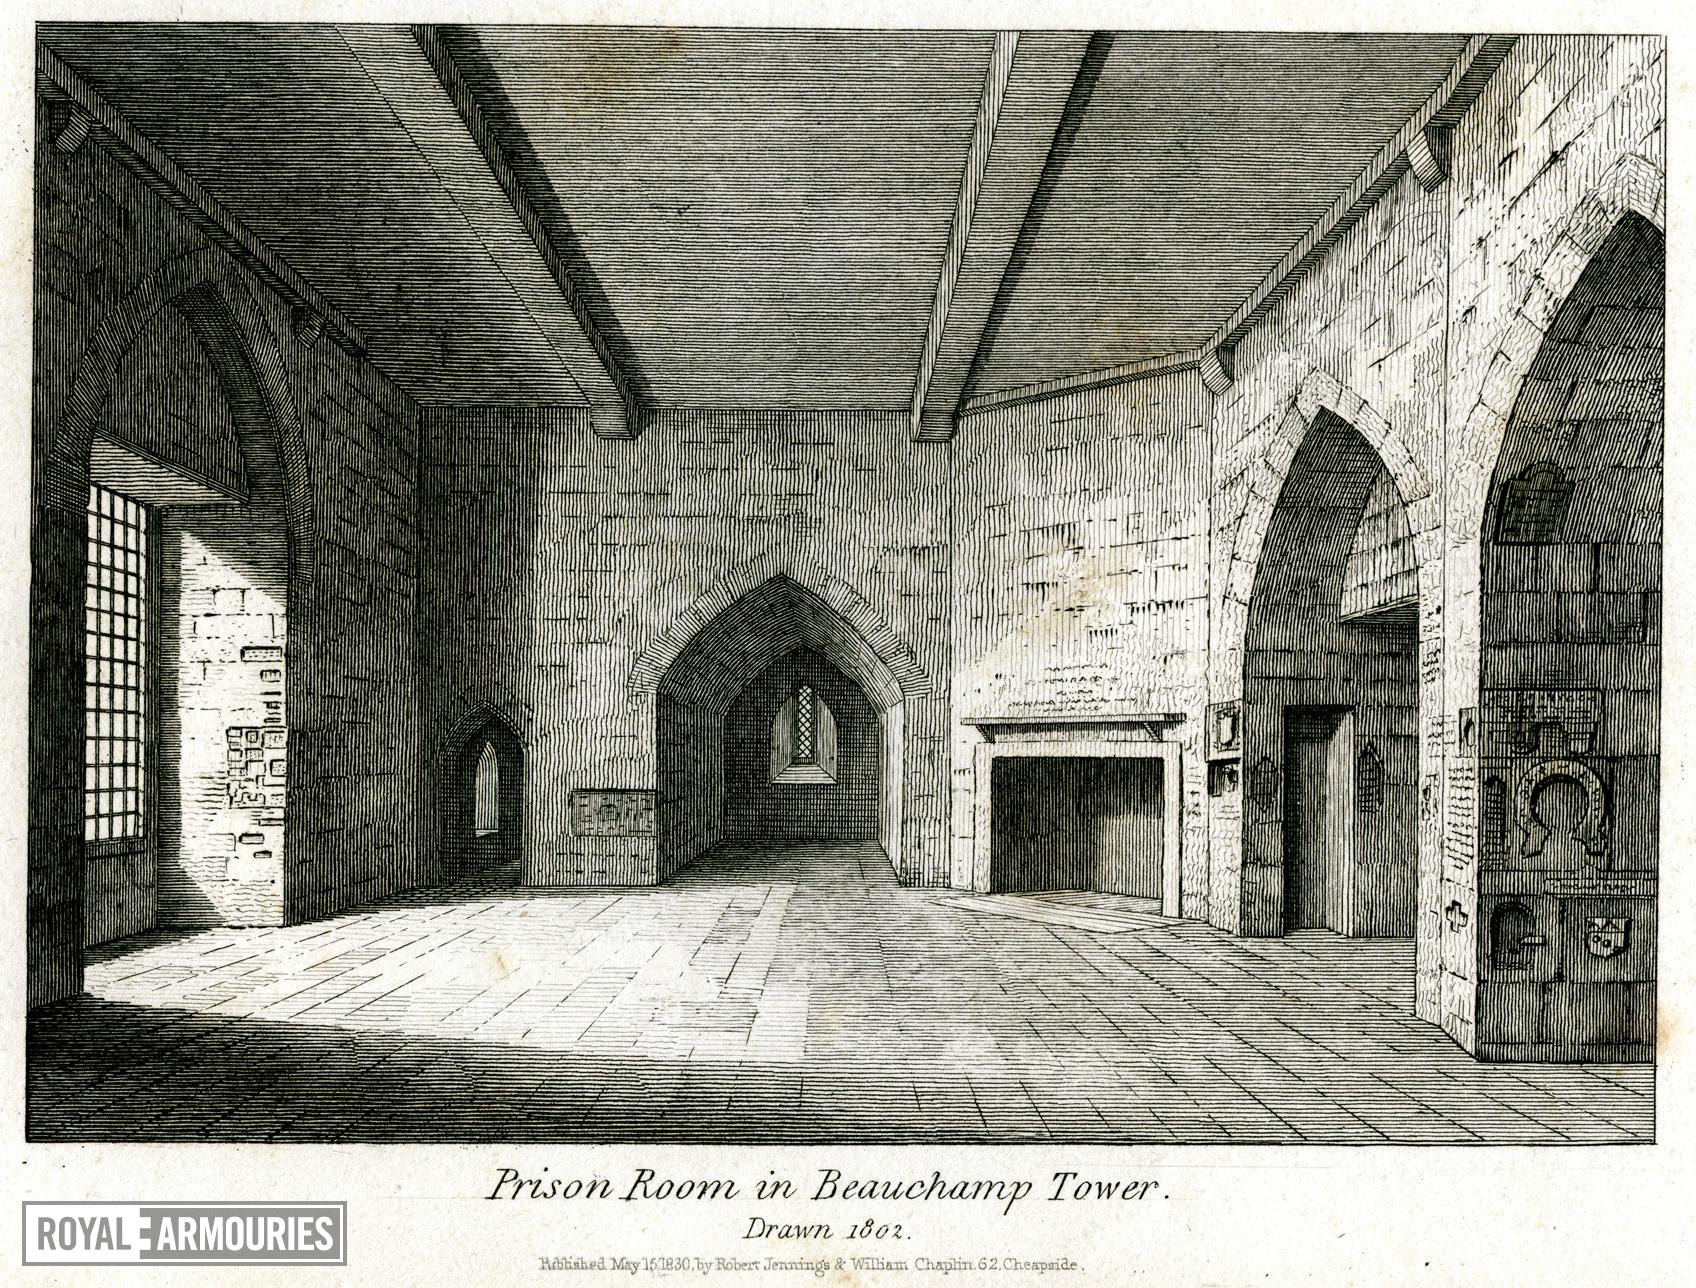 Print 'Prison Room in Beauchamp Tower, Drawn 1802.'